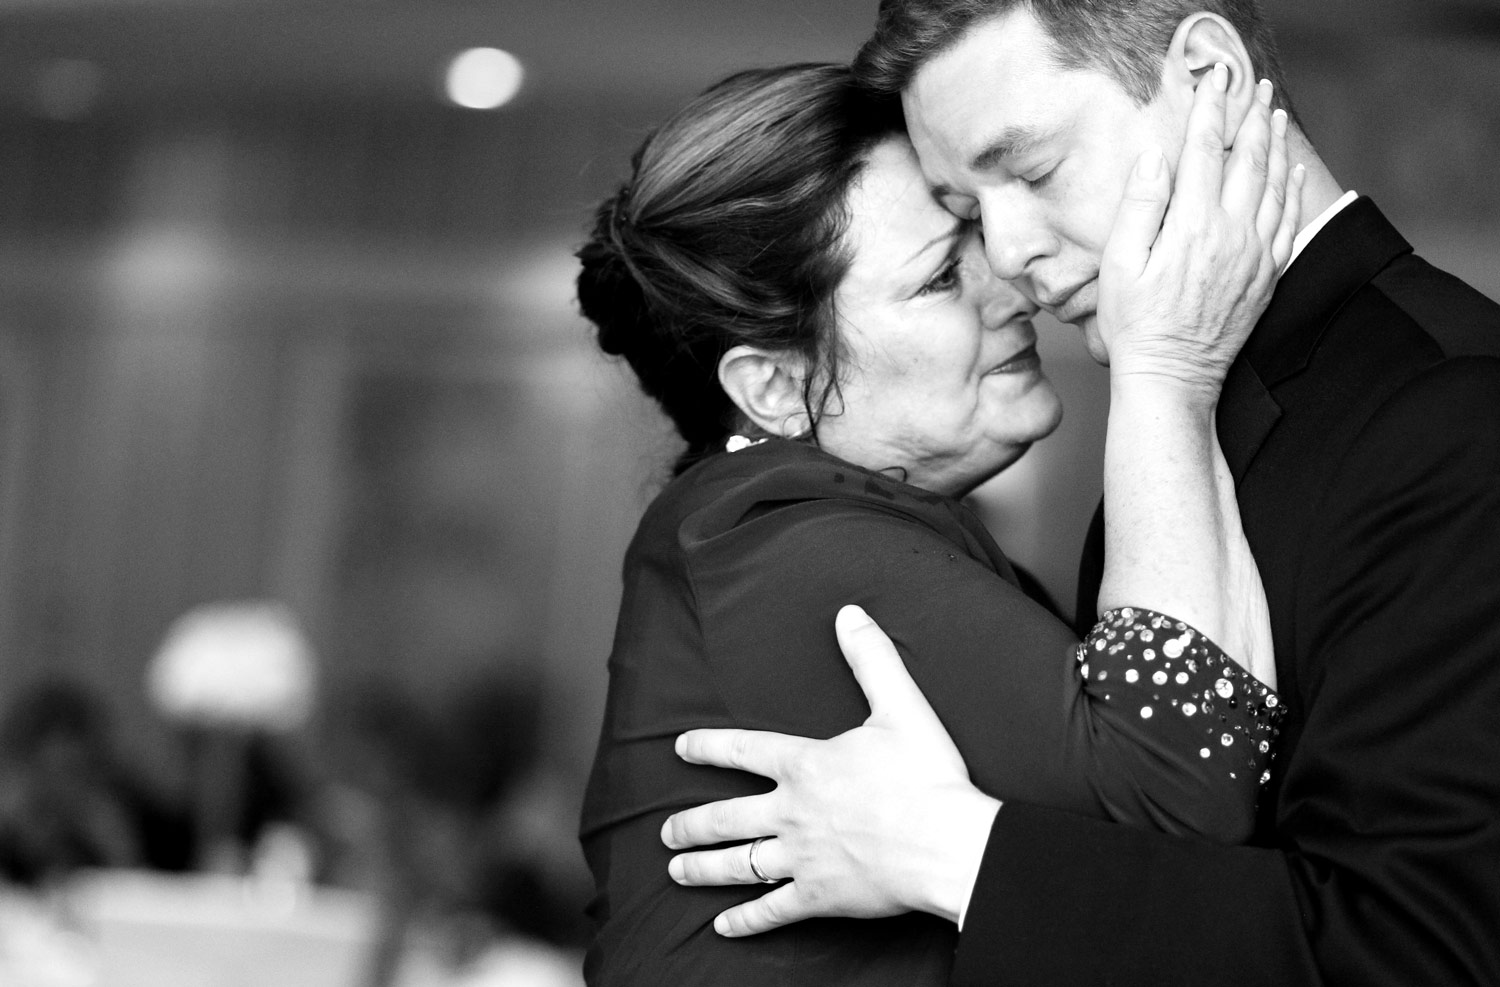 crystal-lake-wedding-photography-country-club-ruthie-hauge-photography-candid-photojournalist.jpg